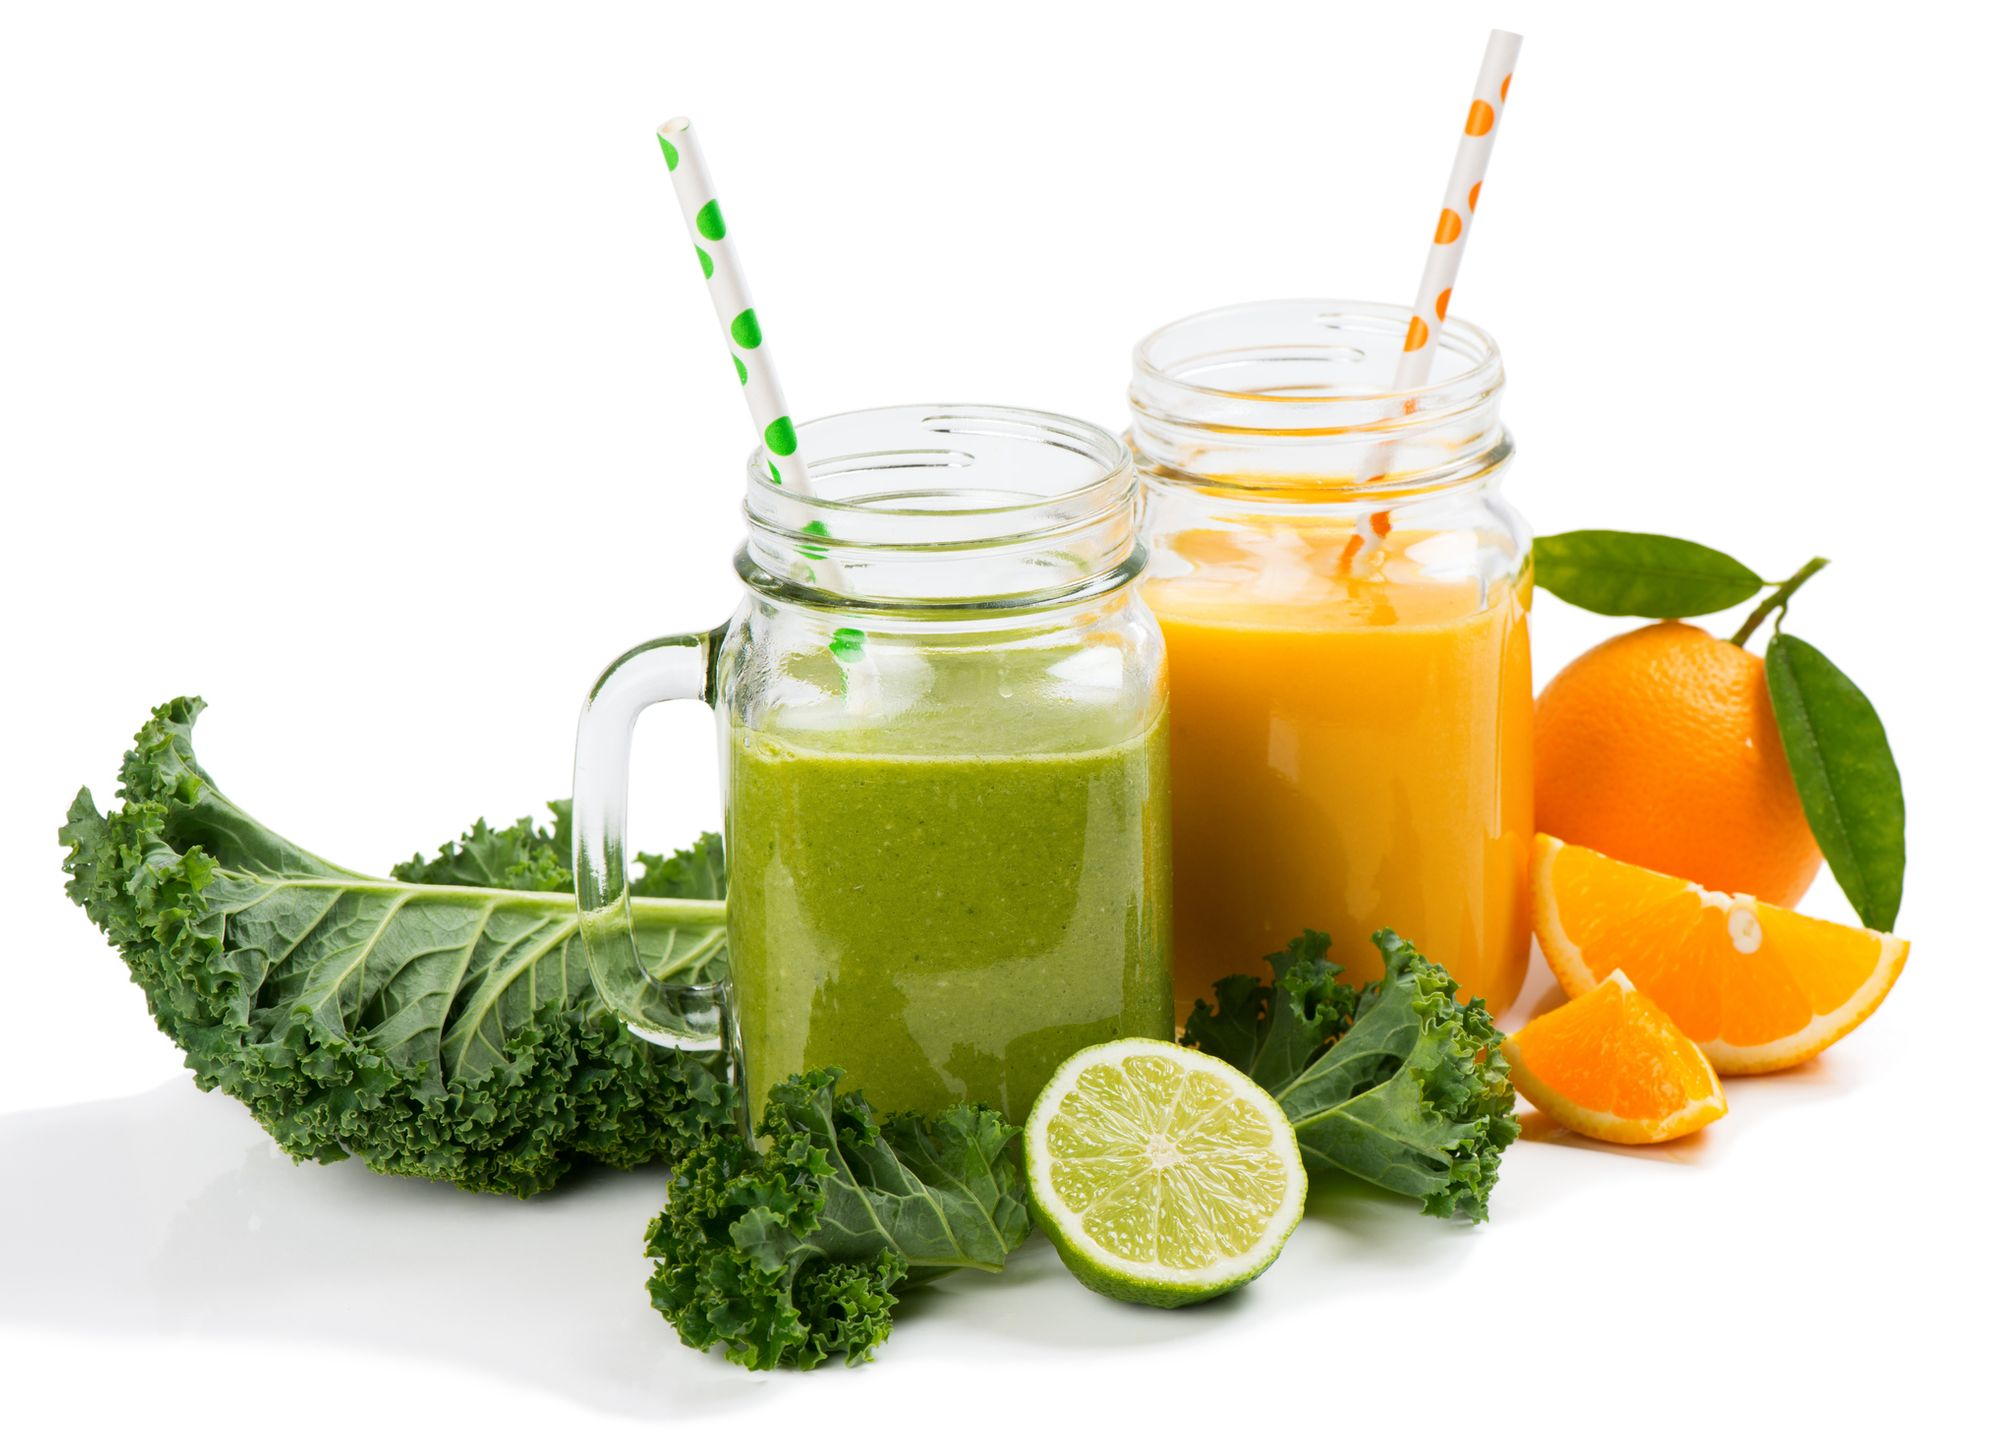 juice cleanse fruits and veggies-520702366